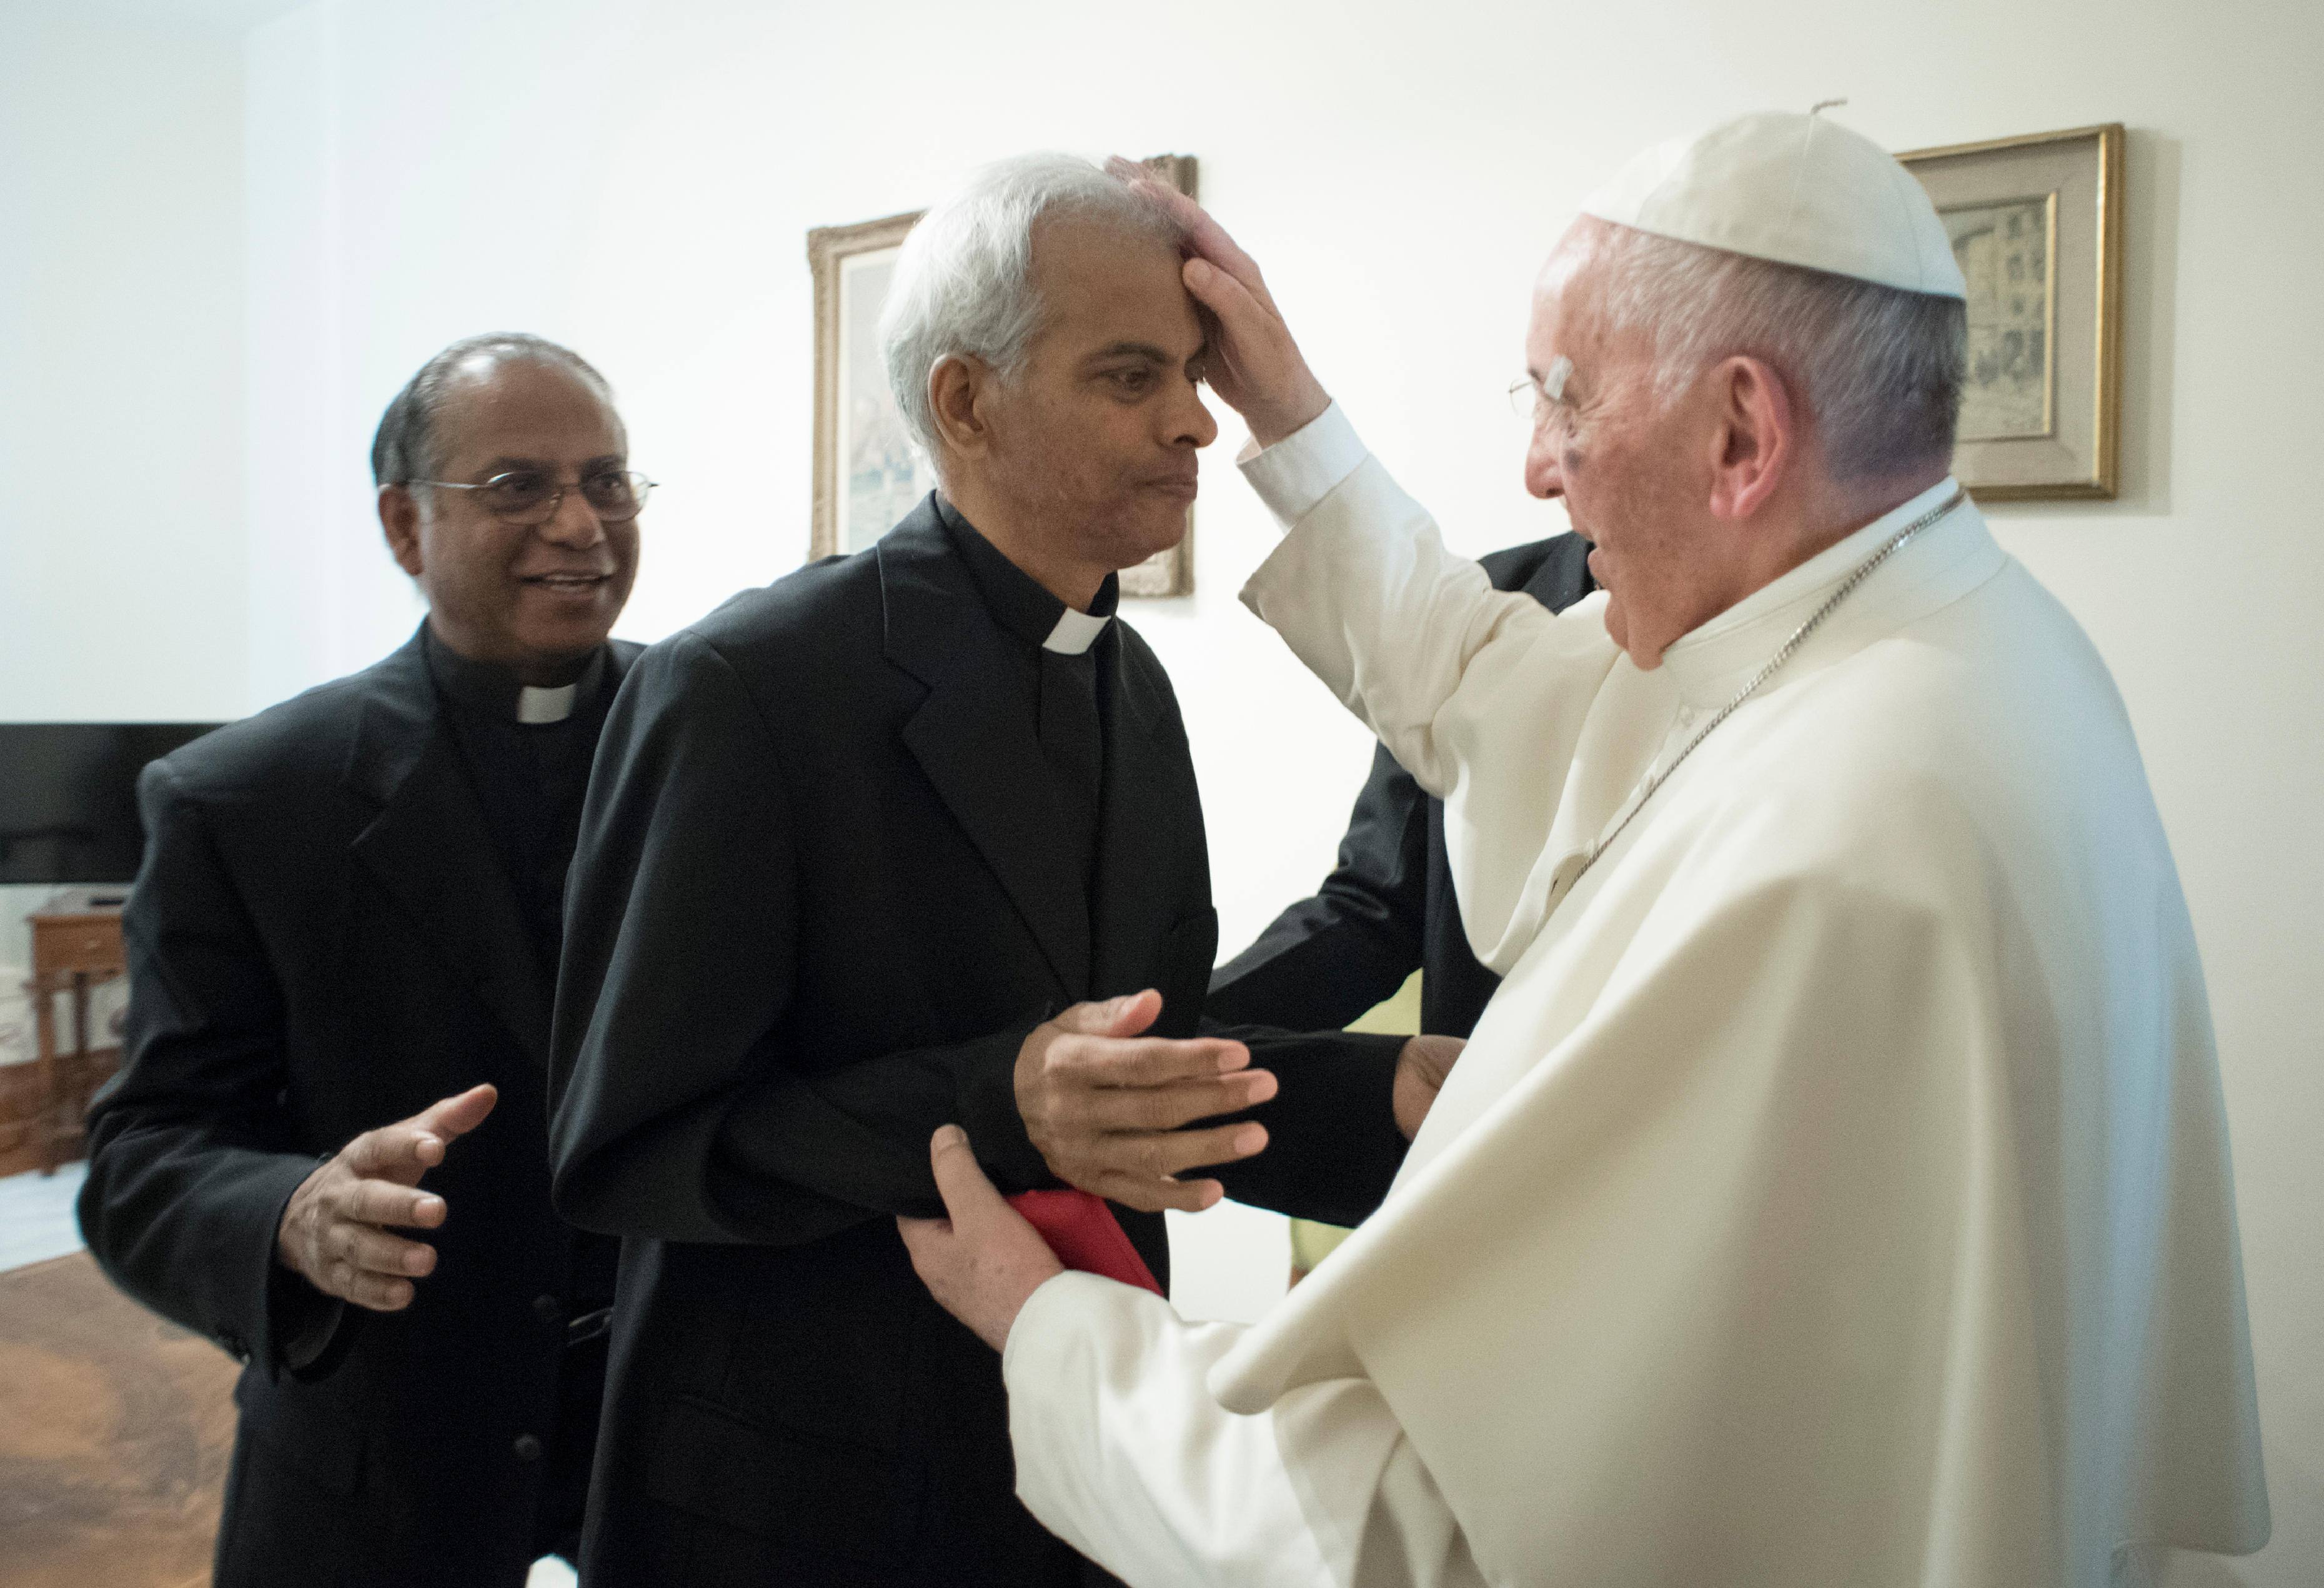 Fr Thomas meets the Pope